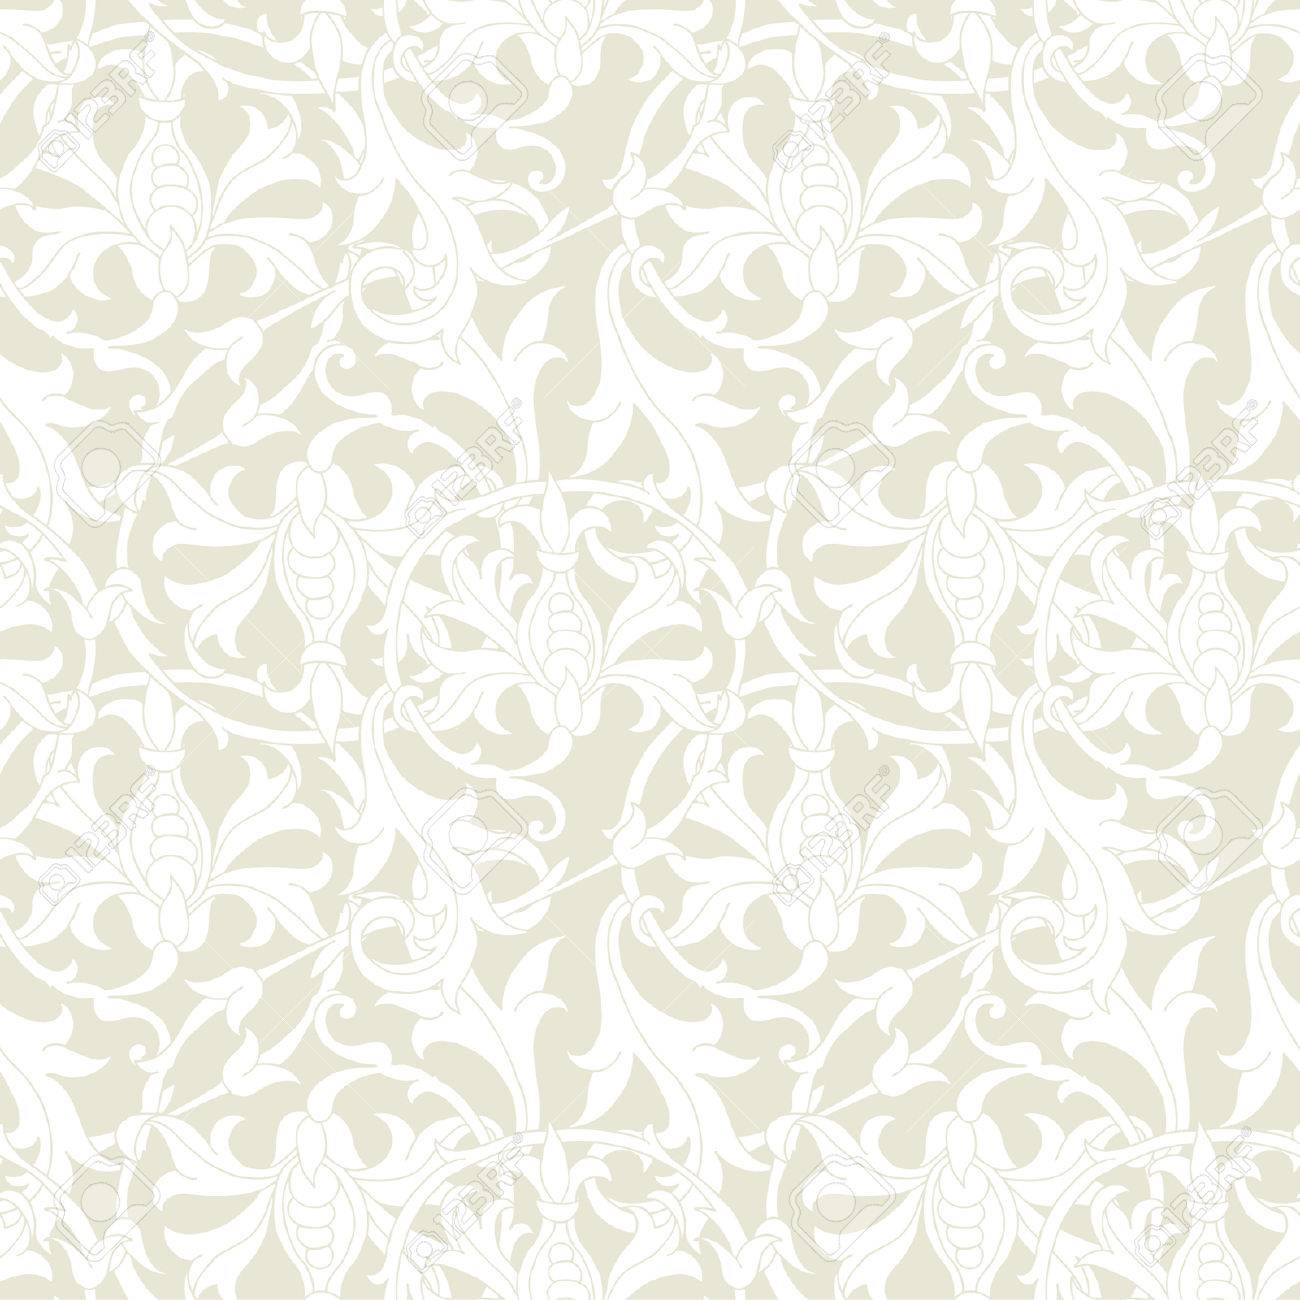 Elegance Seamless pattern with ornament, vector floral illustration in vintage style Stock Vector - 24894285